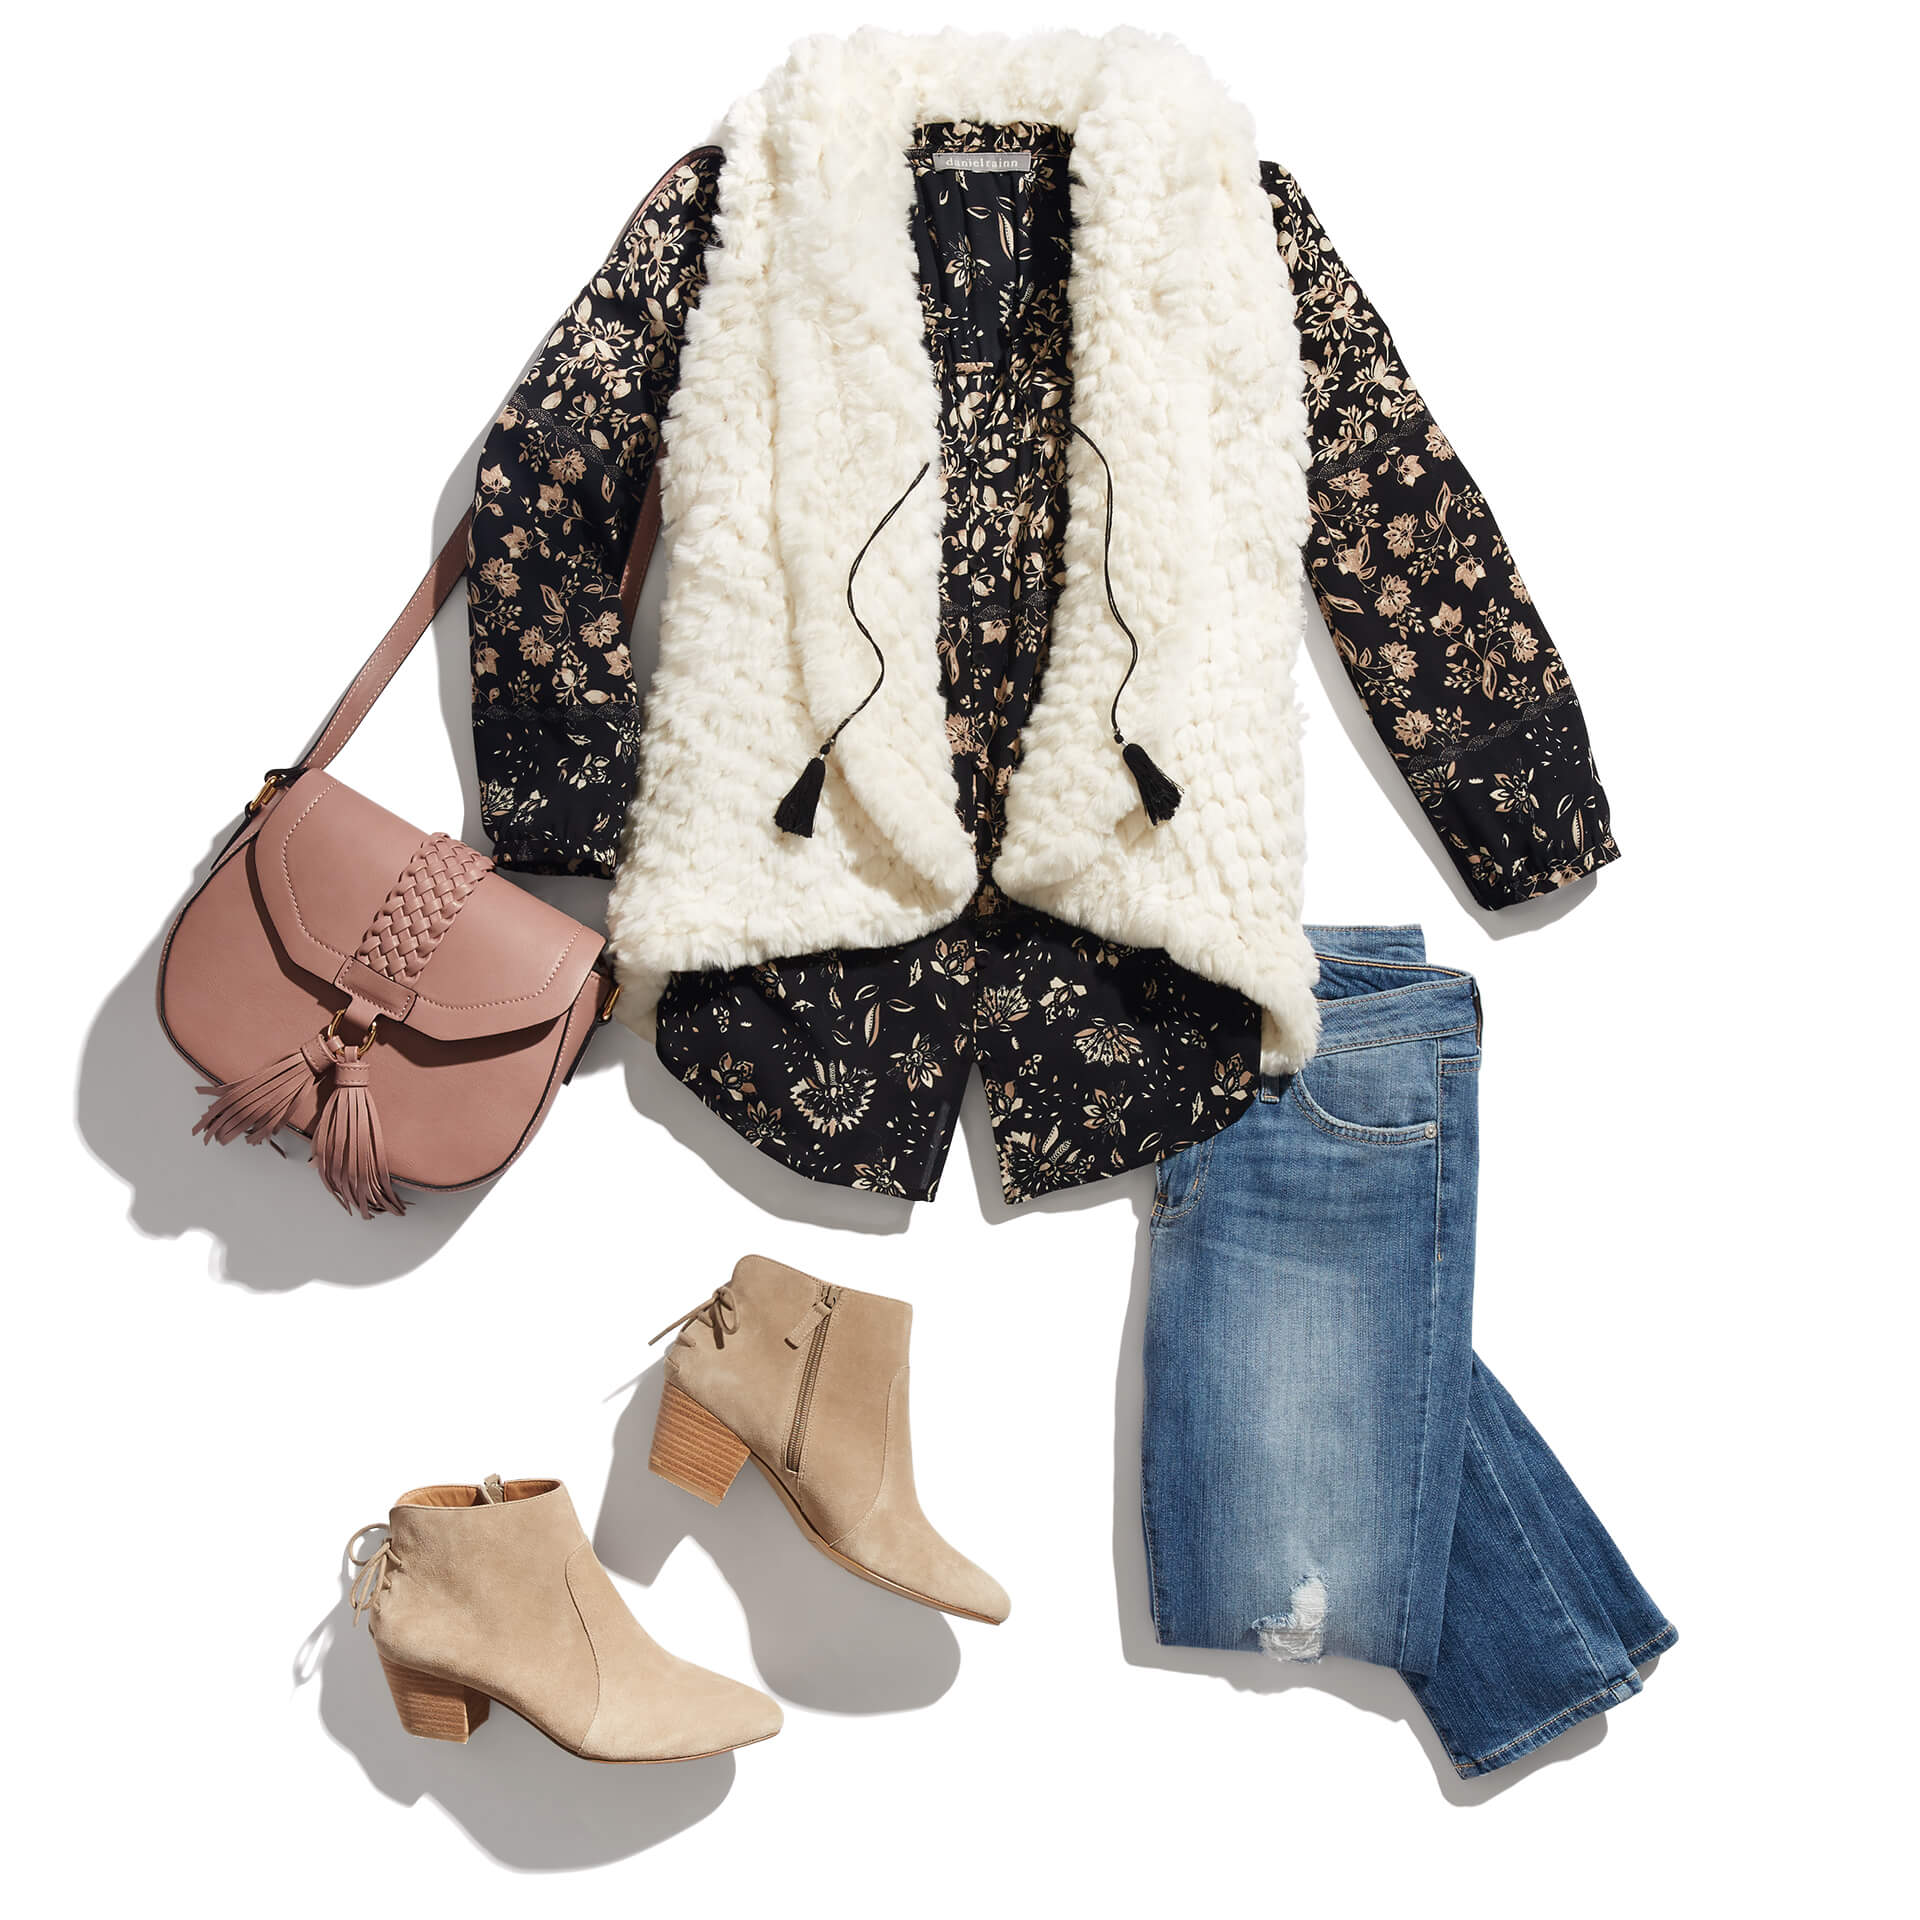 Modest dressing outfit ideas